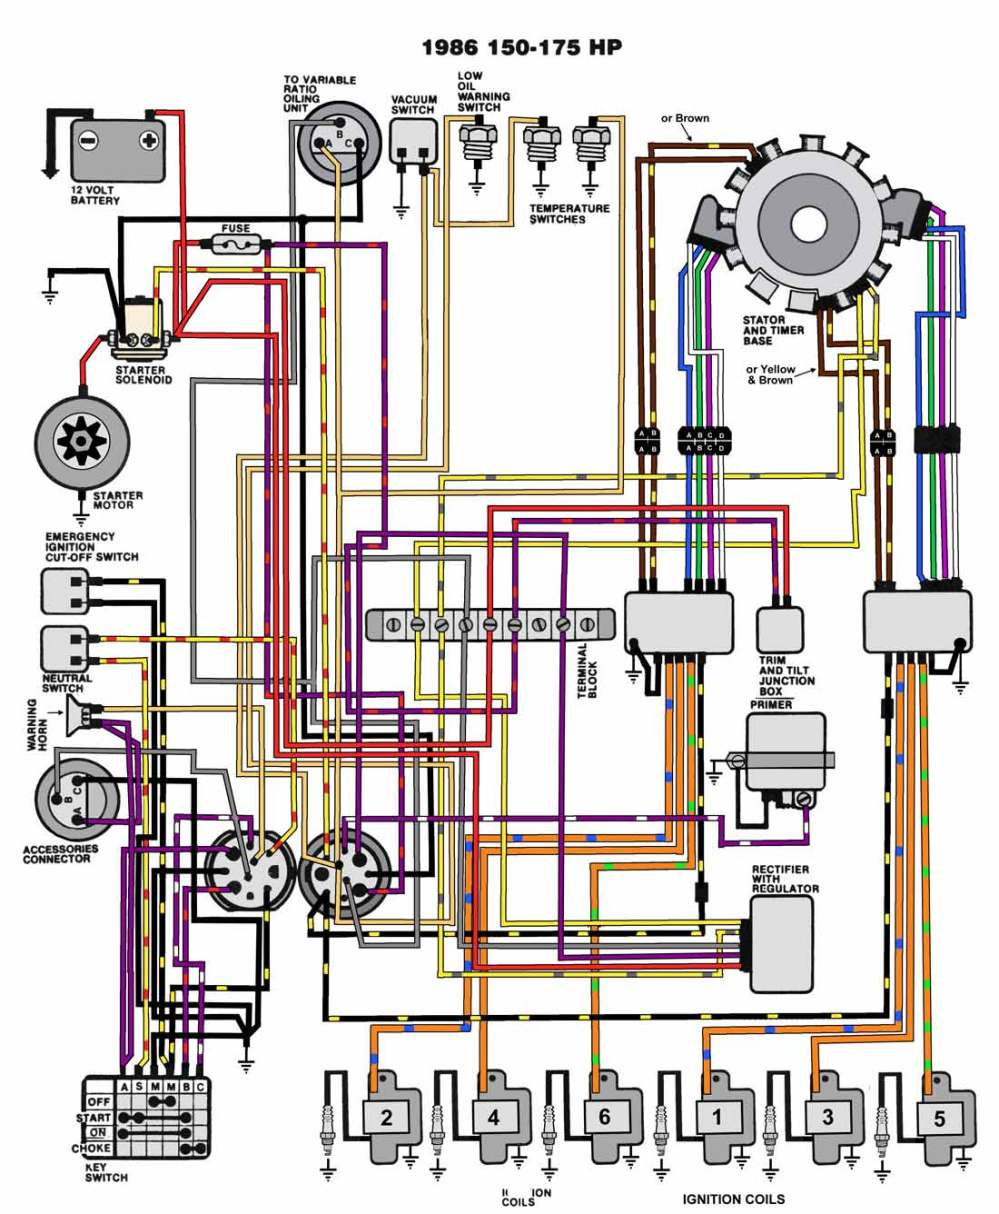 medium resolution of yamaha 200 outboard wiring schematics simple wiring diagrams rh 44 studio011 de wiring diagram yamaha blaster